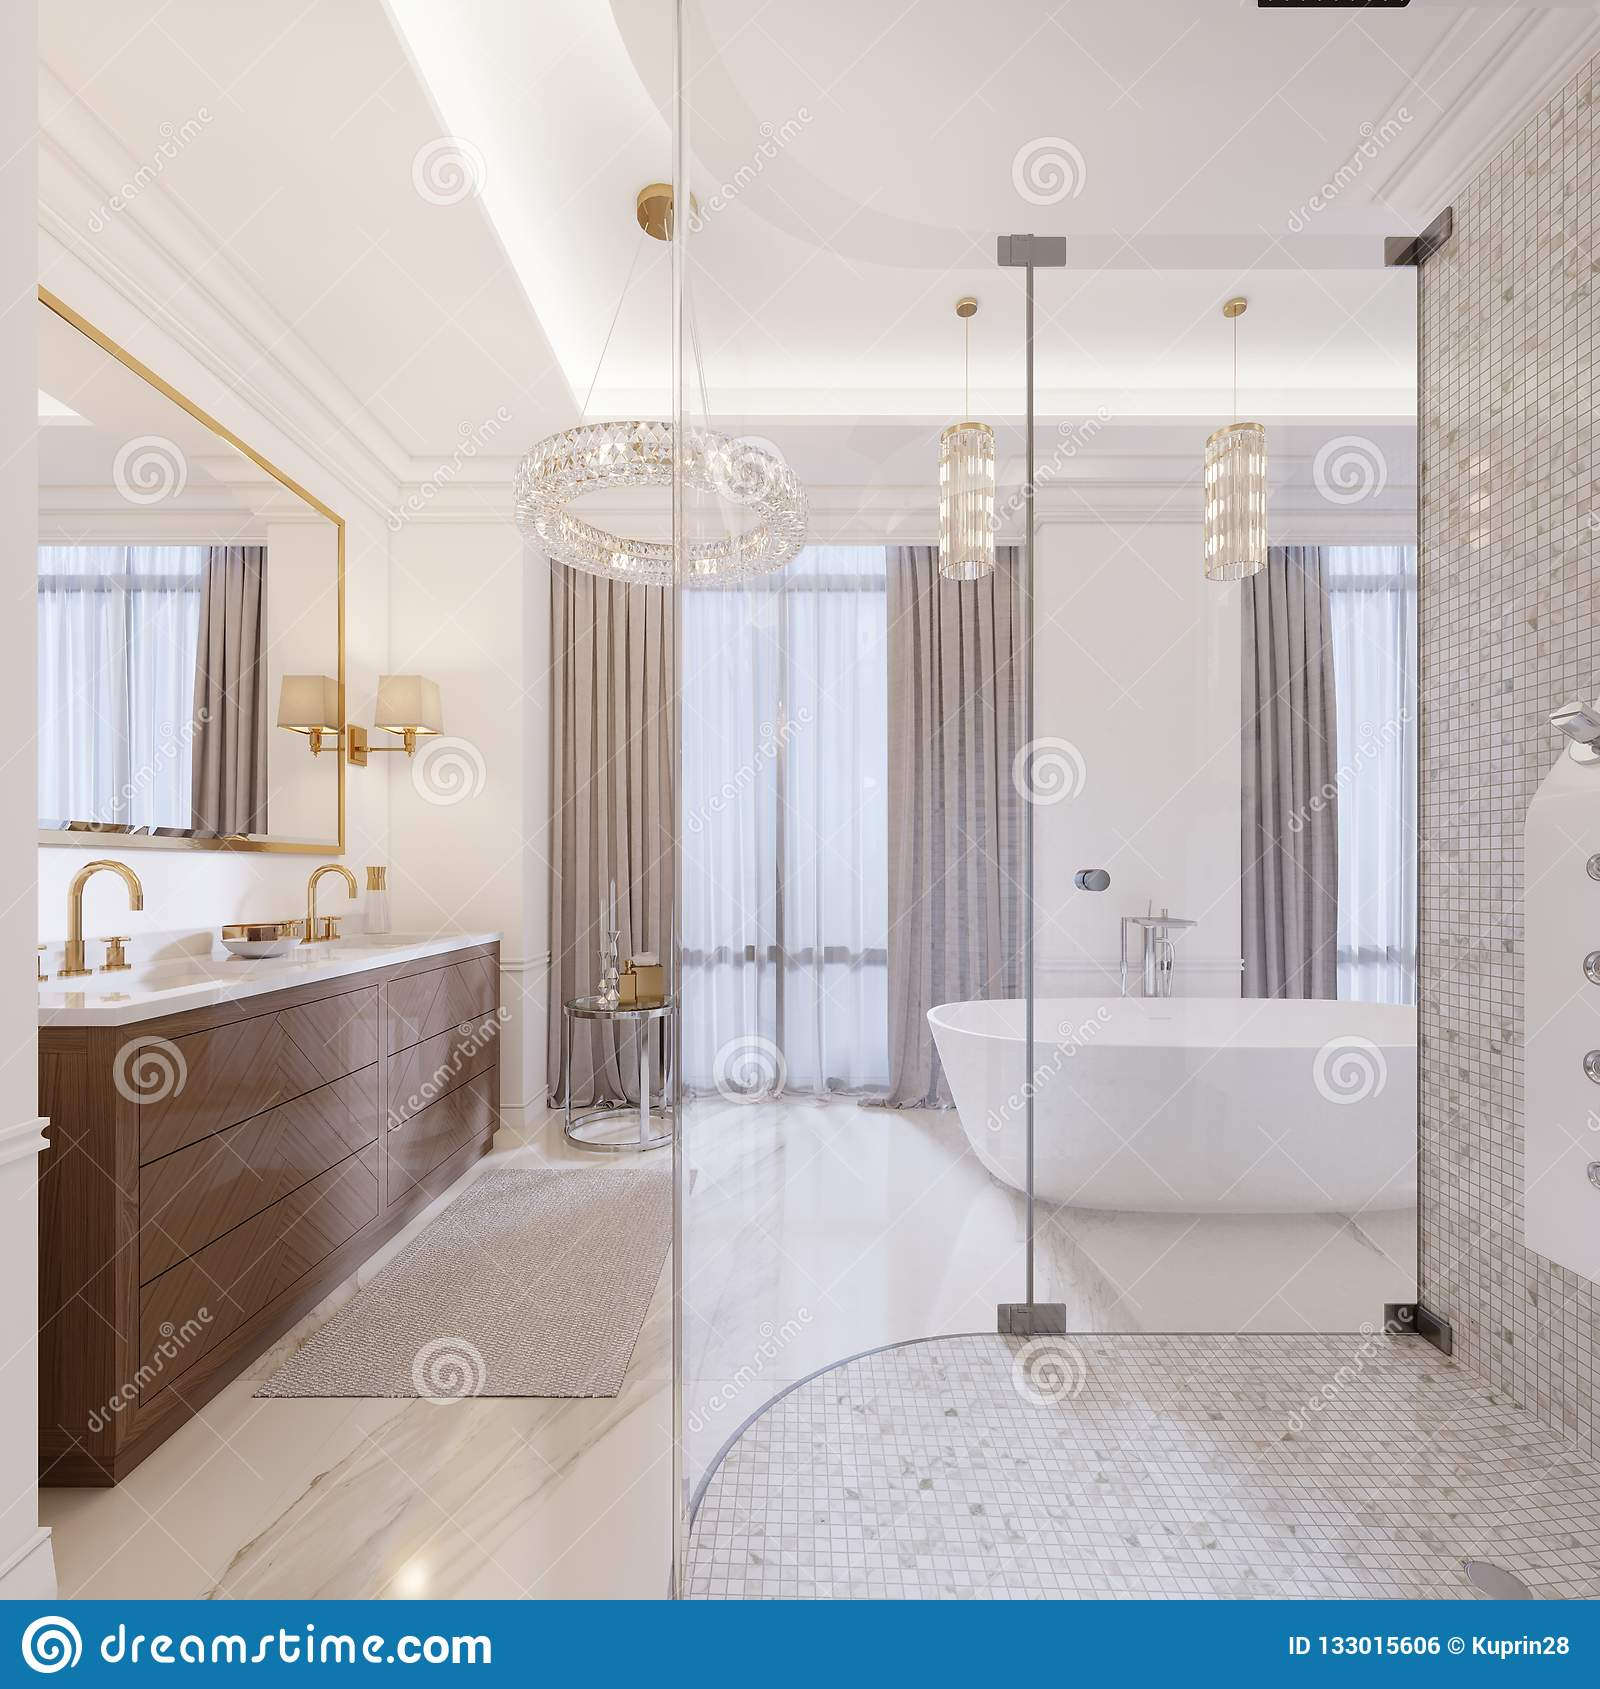 Modern Bathroom With Vanity And A Mirror In Gold Frame Sconces On The Wall Low Table Decor Shower Fashionable Bath 3d Rendering